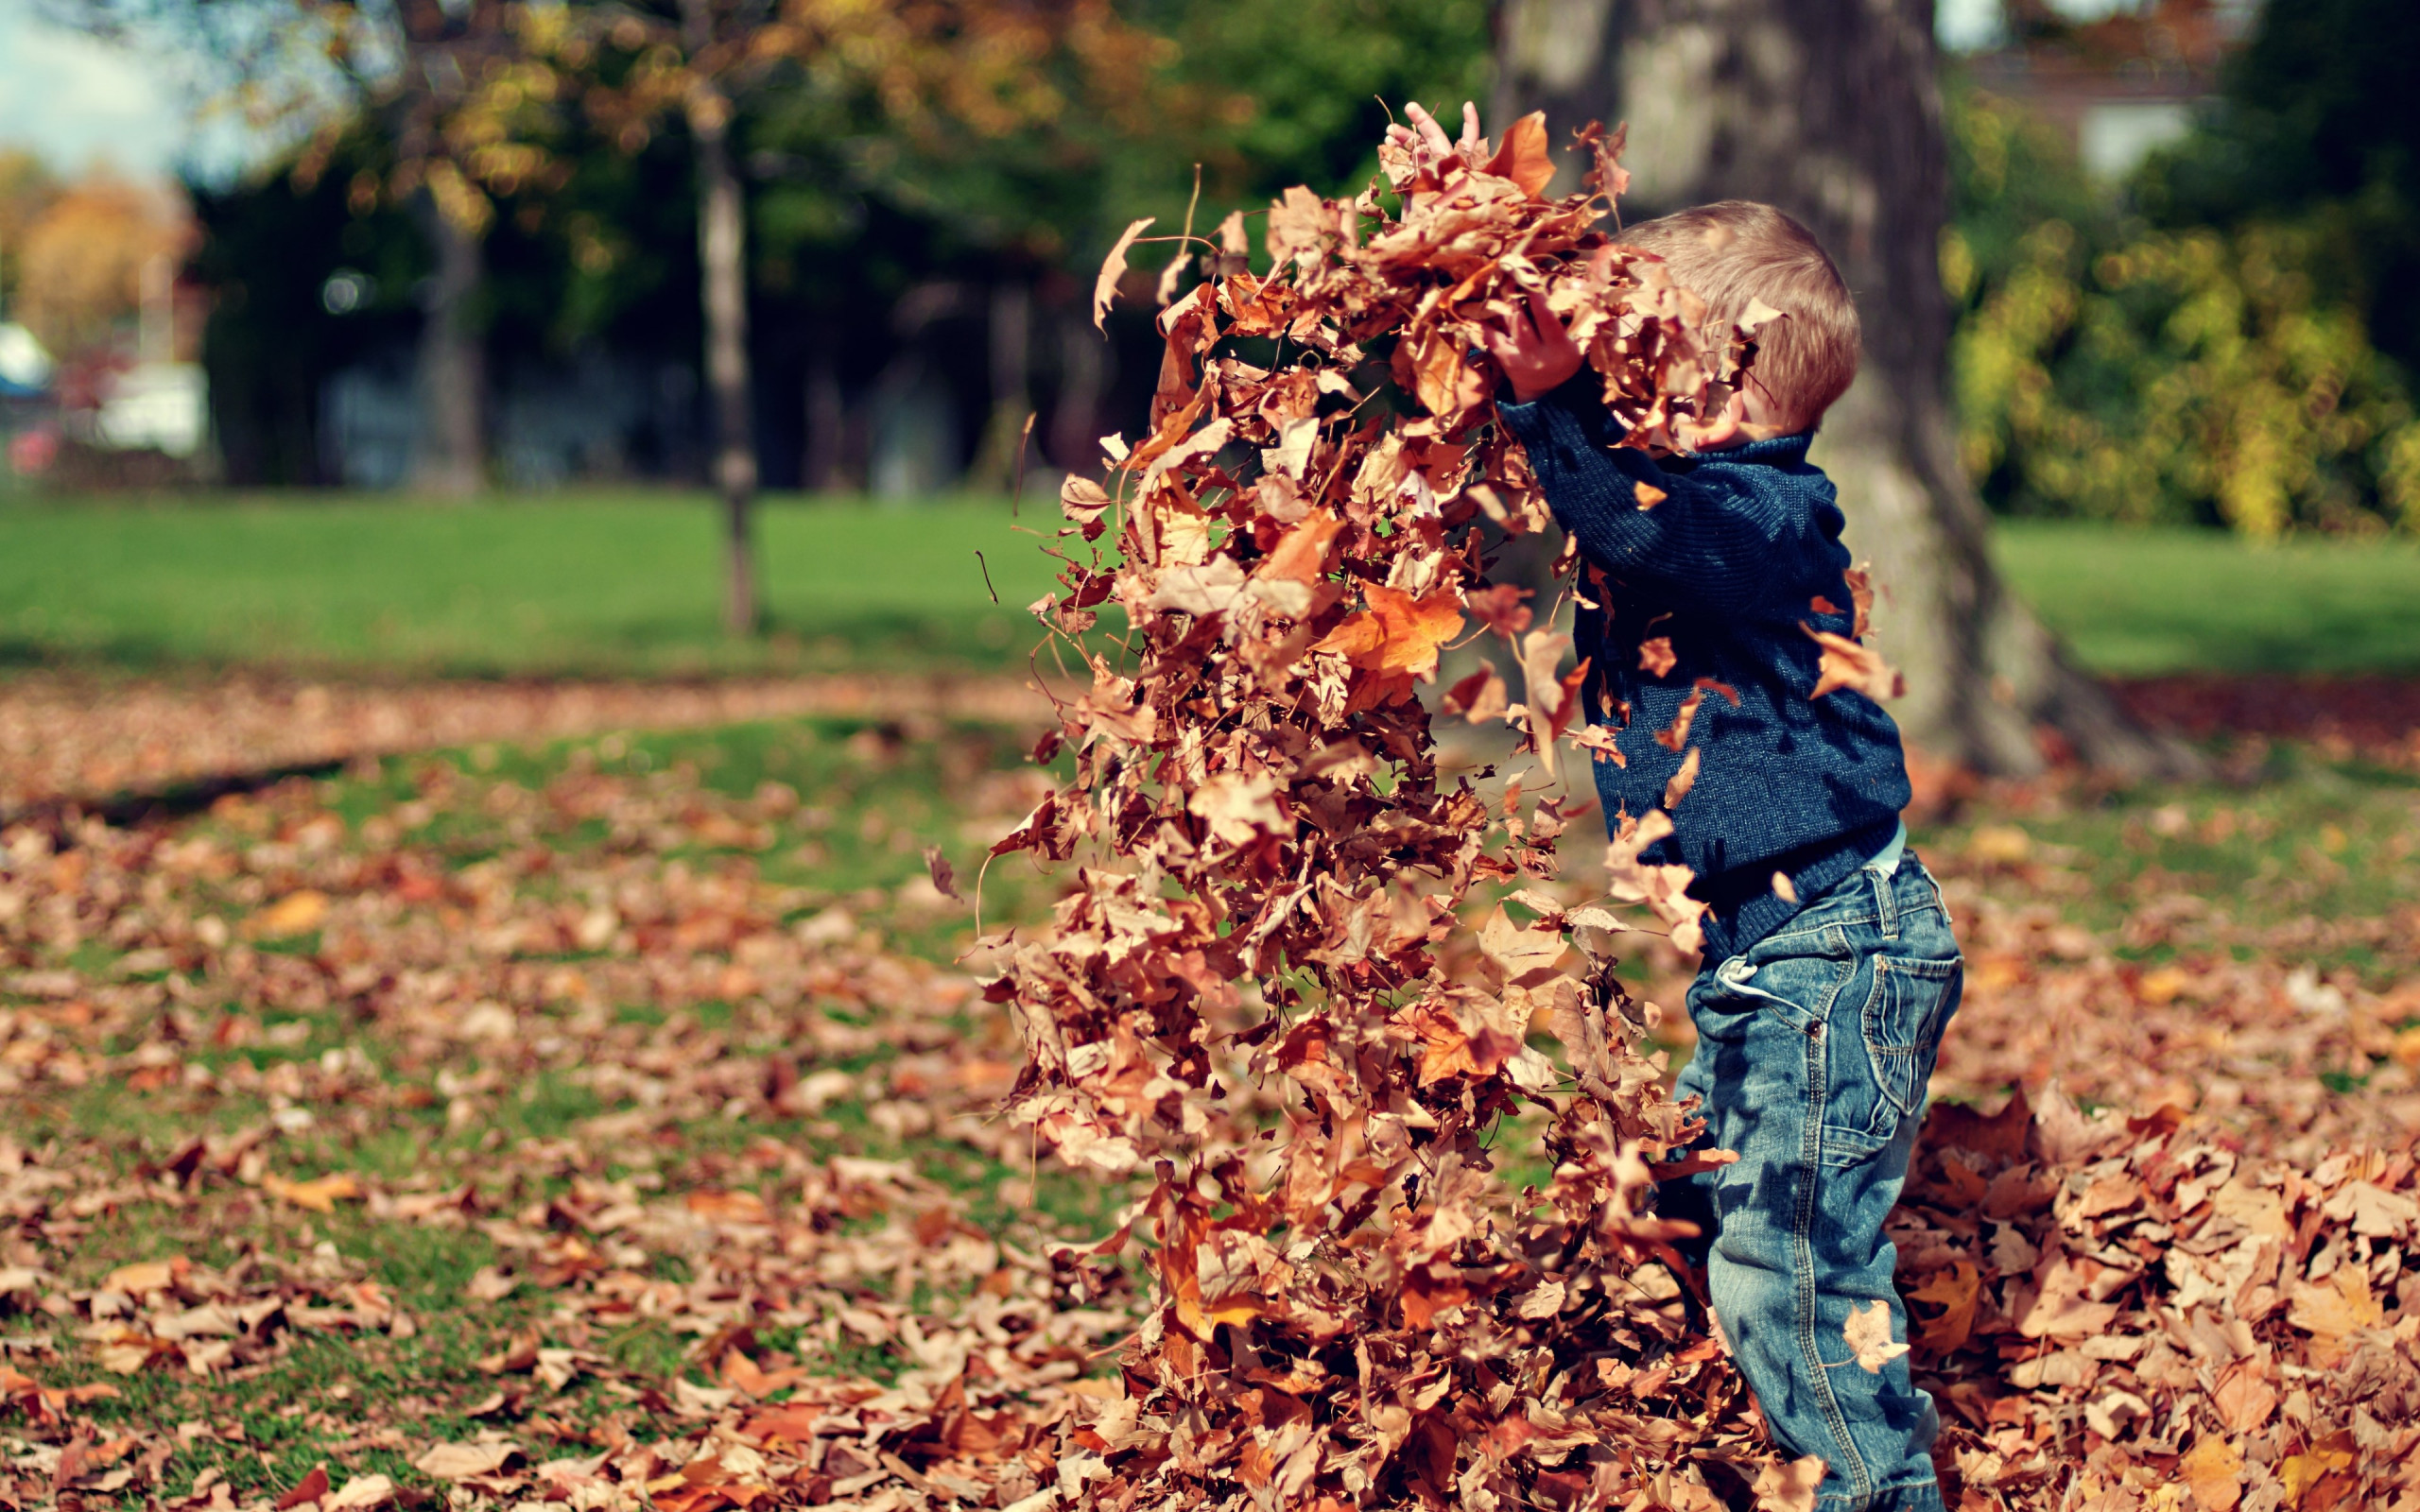 The child is playing with leaves | 2560x1600 wallpaper